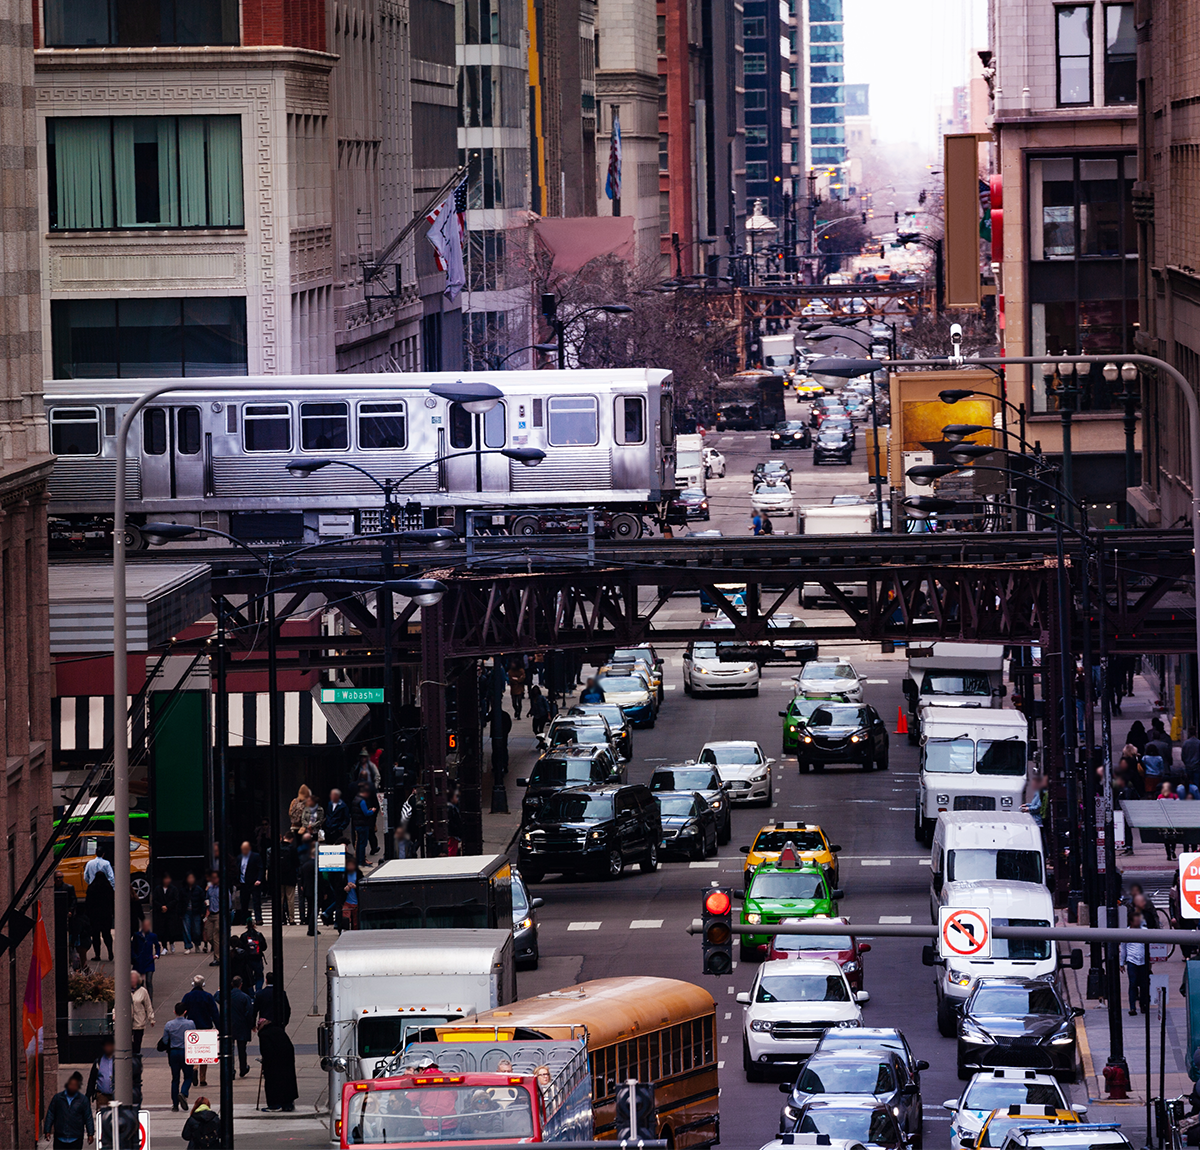 A congested city with trains, cars, and people surrounded by buildings.